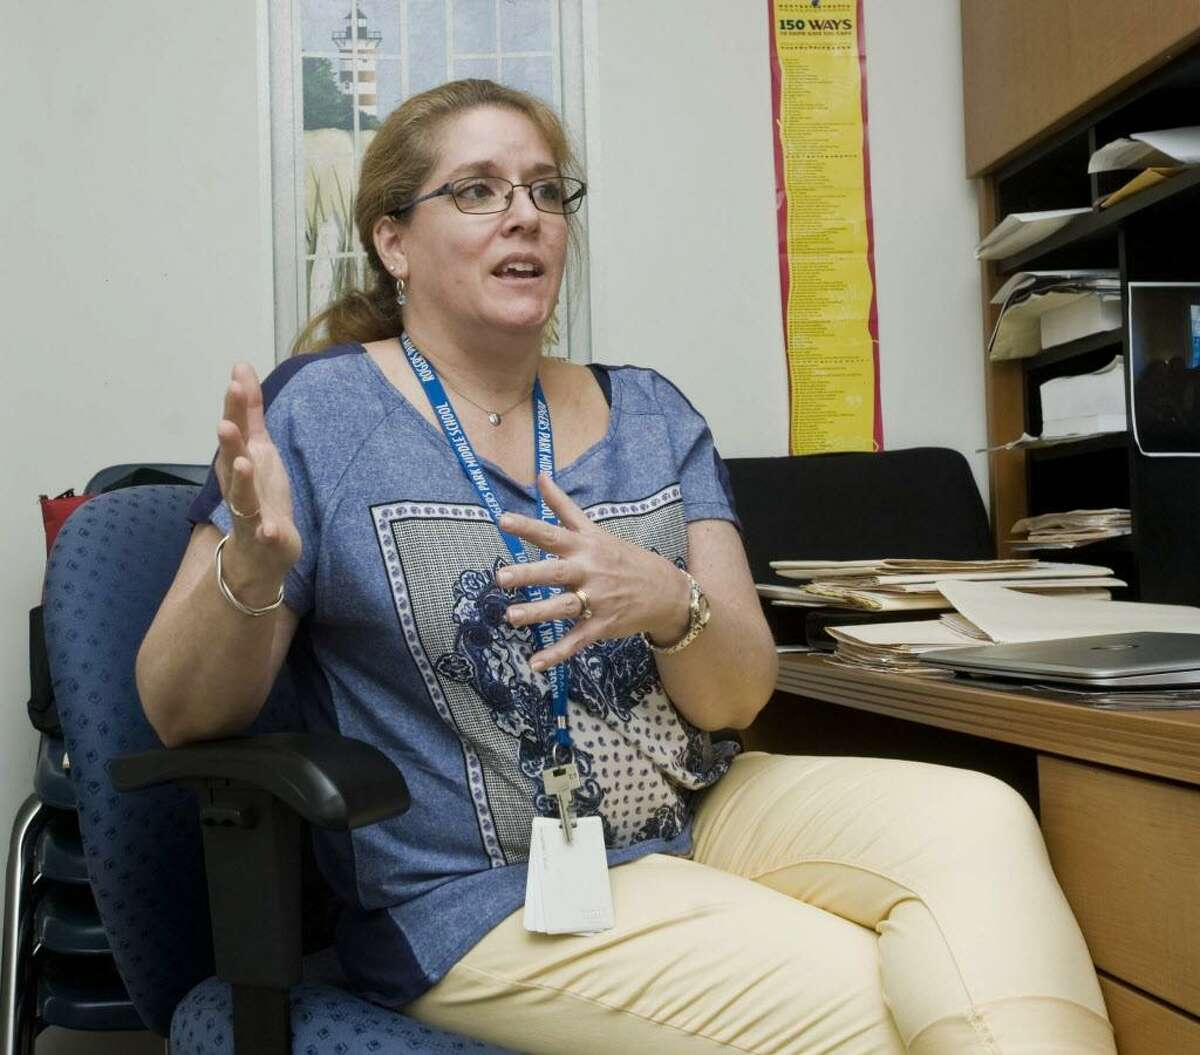 Carolyn Cunningham, a licensed professional counselor at Rogers Park Middle School's health center. Thursday, May 18, 2017